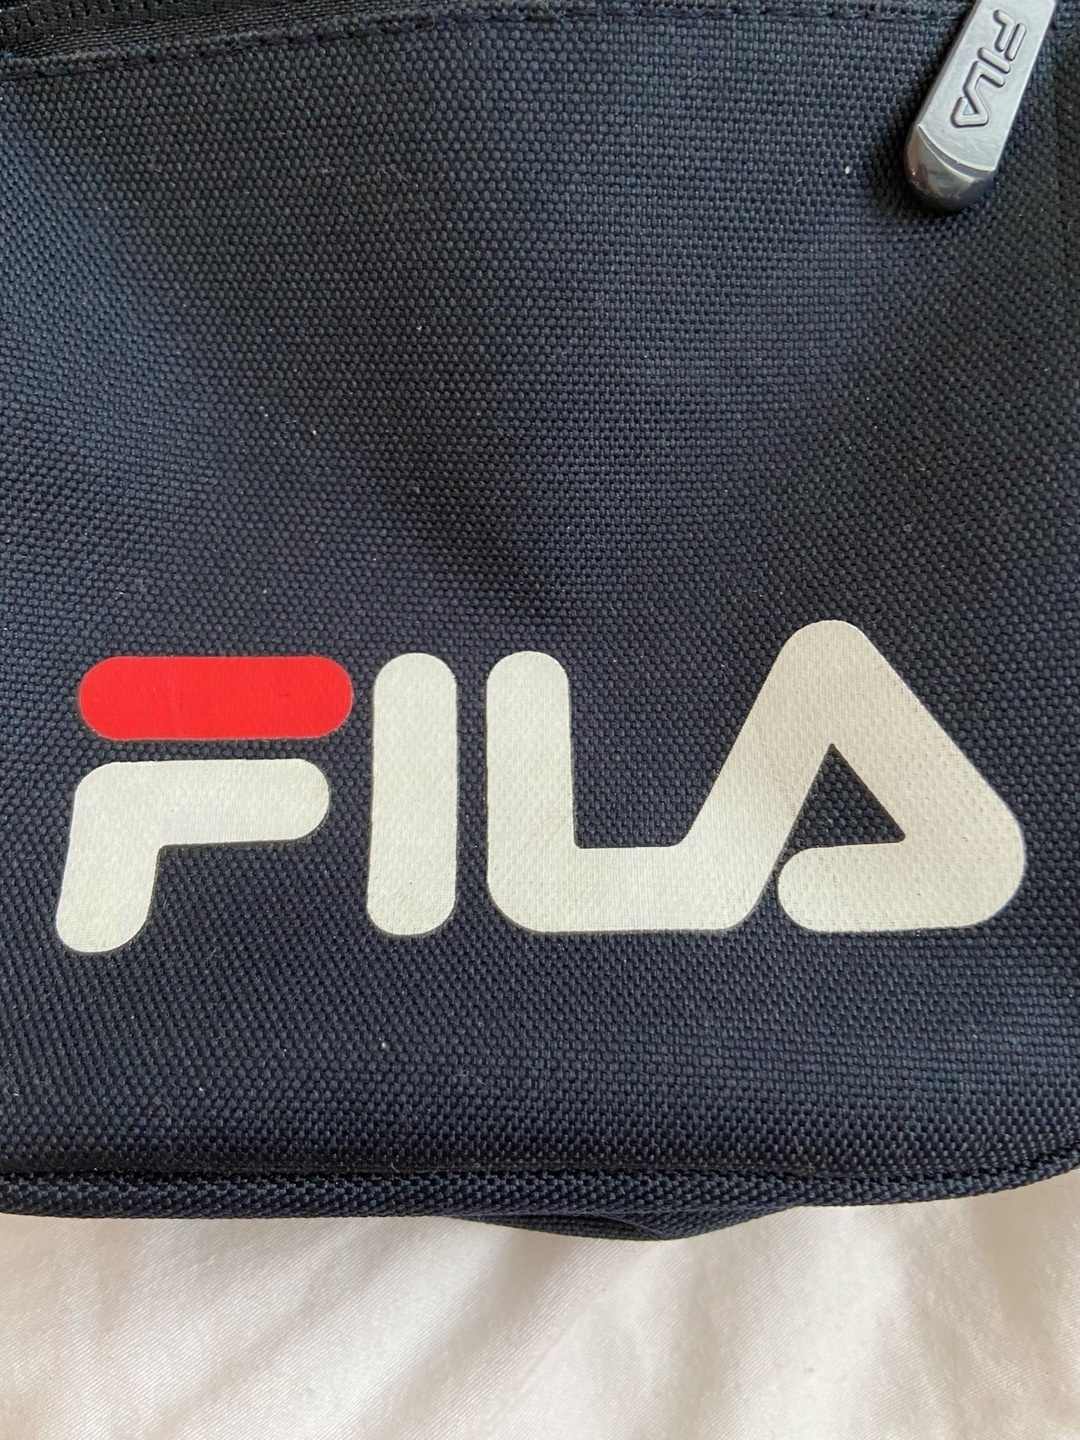 Women's bags & purses - FILA photo 4